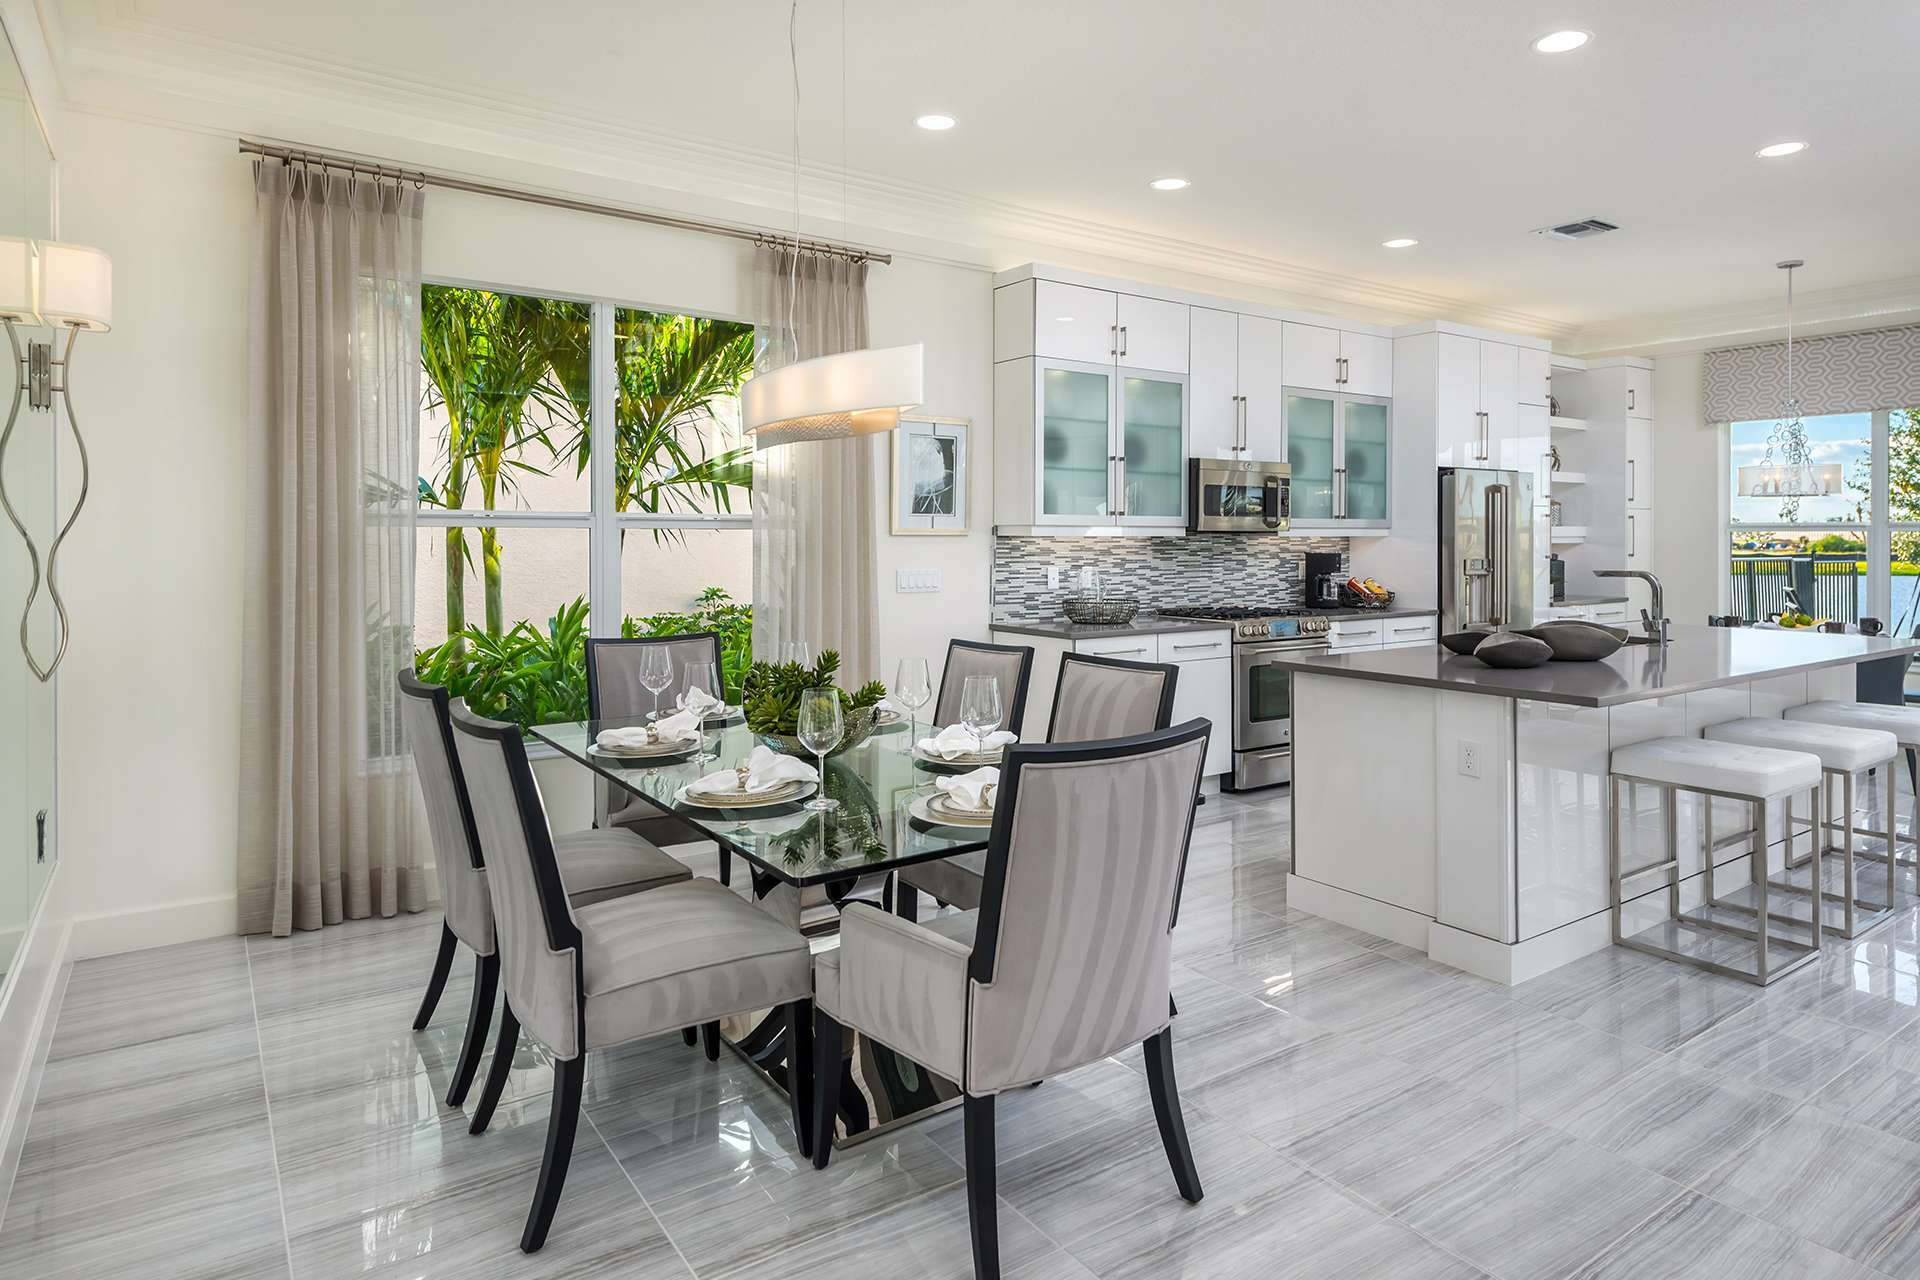 Kitchen featured in the Cabernet By GL Homes in Fort Myers, FL